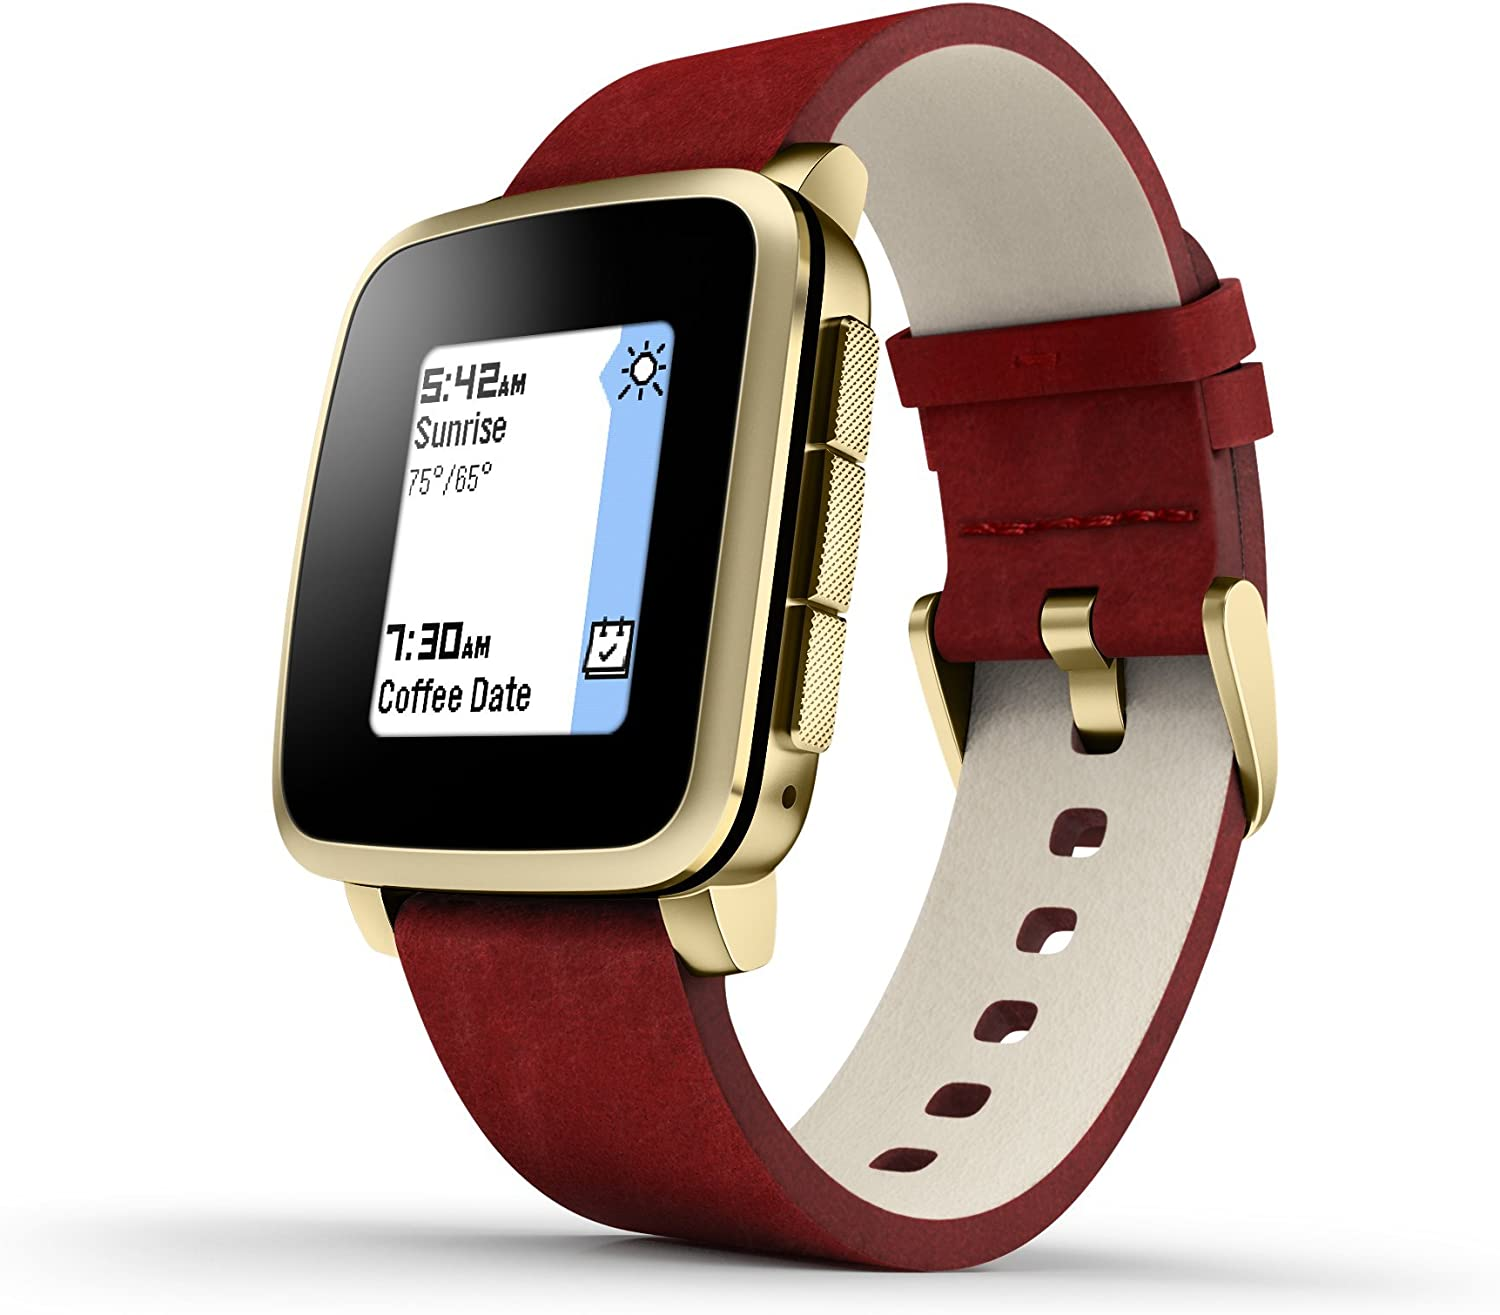 Pebble Time Steel Smartwatch for Apple/Android Devices - Gold